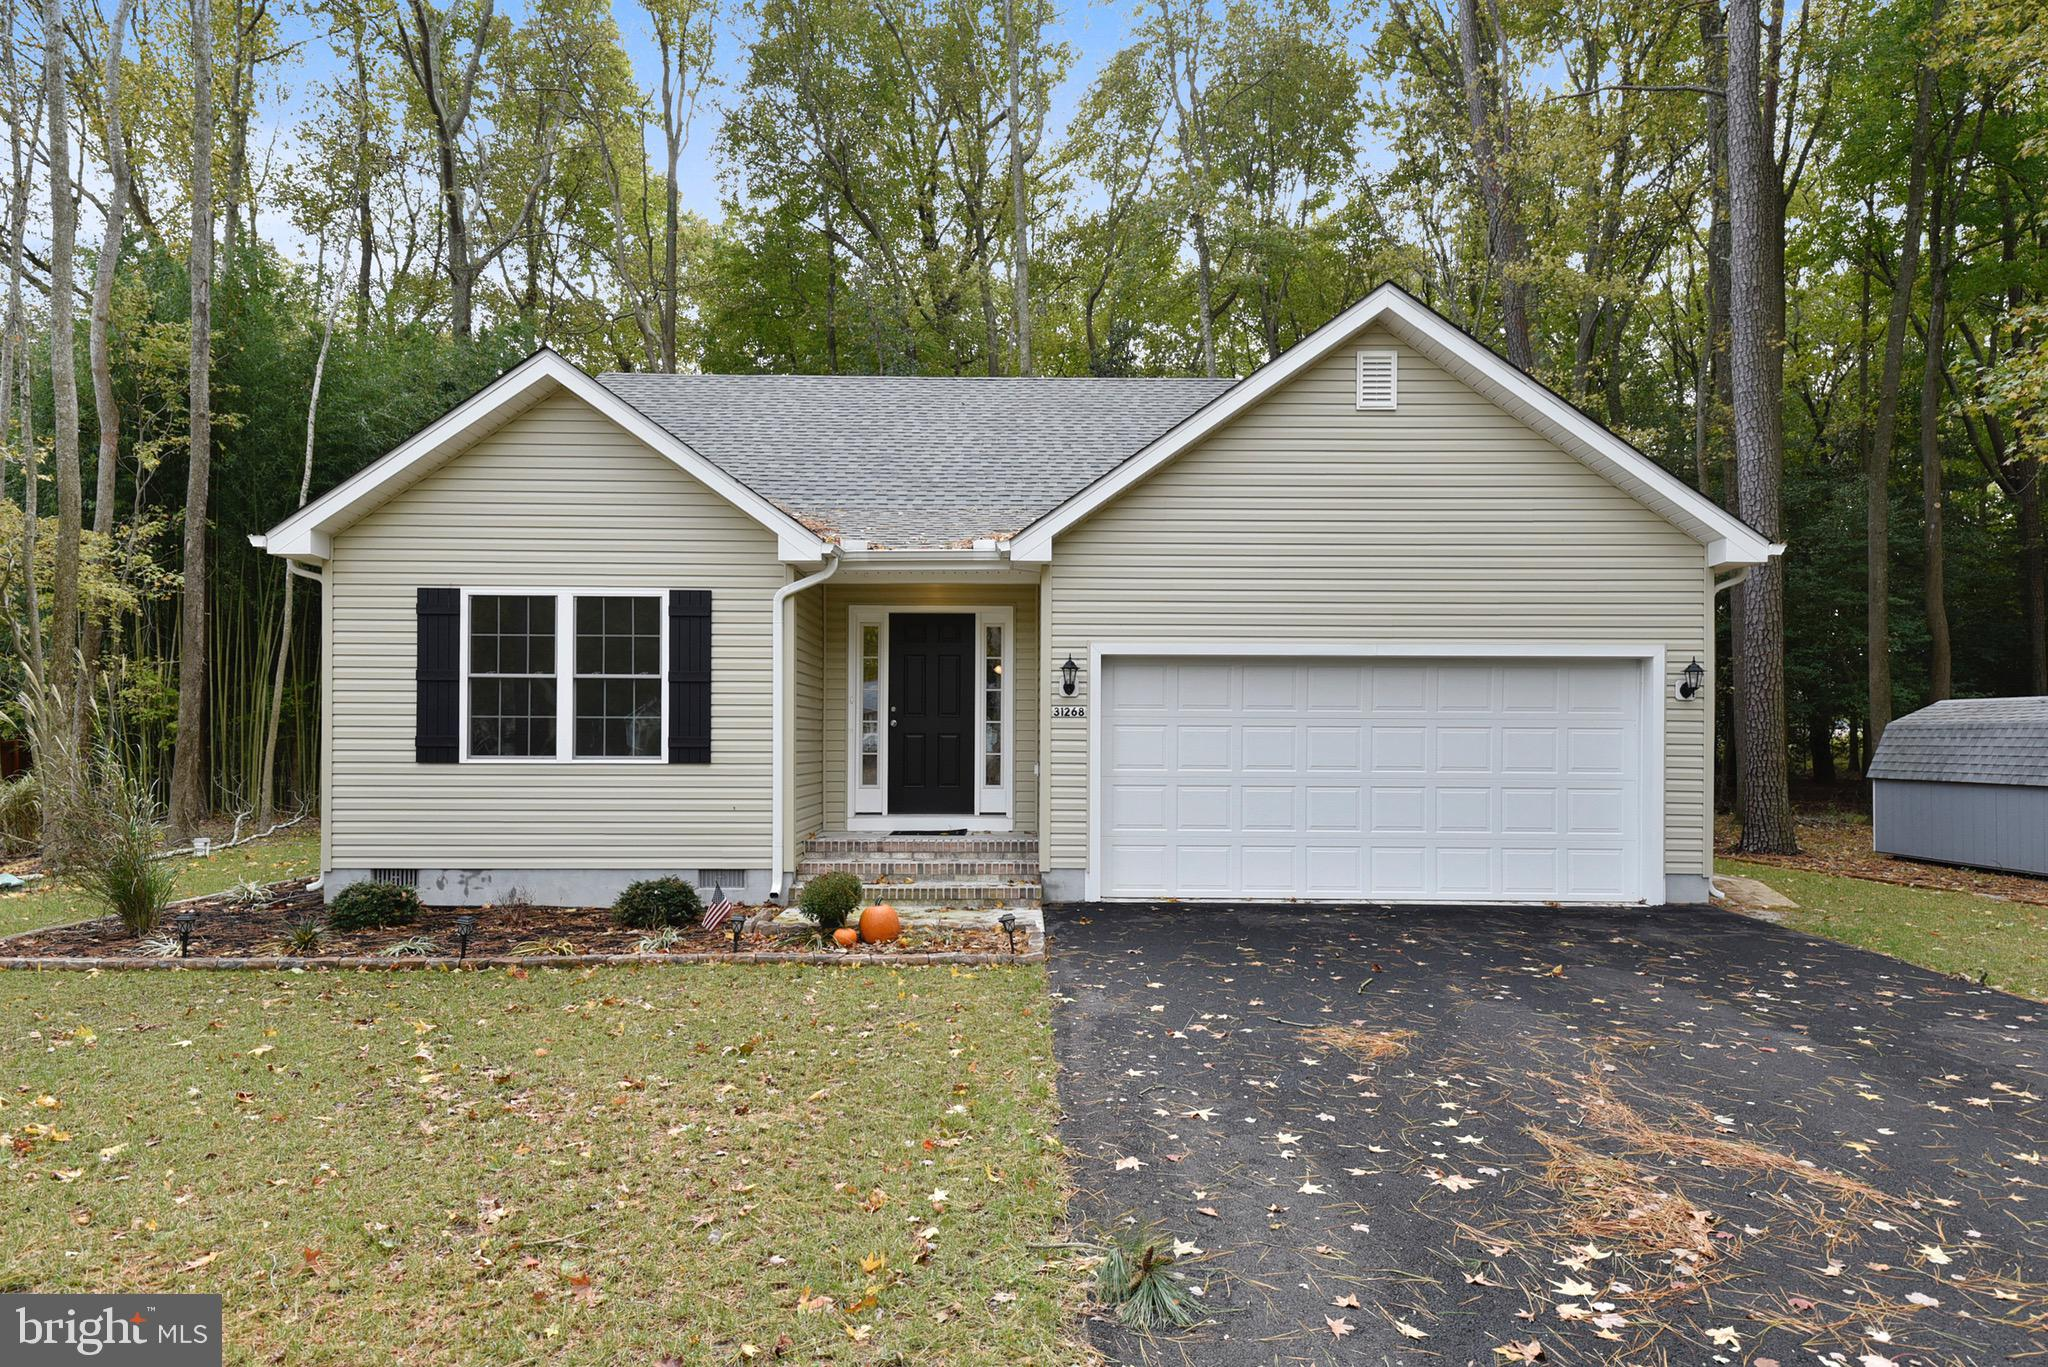 Beautiful 3 bedroom, 2 bath home just completed in 2018!  Located on a private, wooded lot, this hom